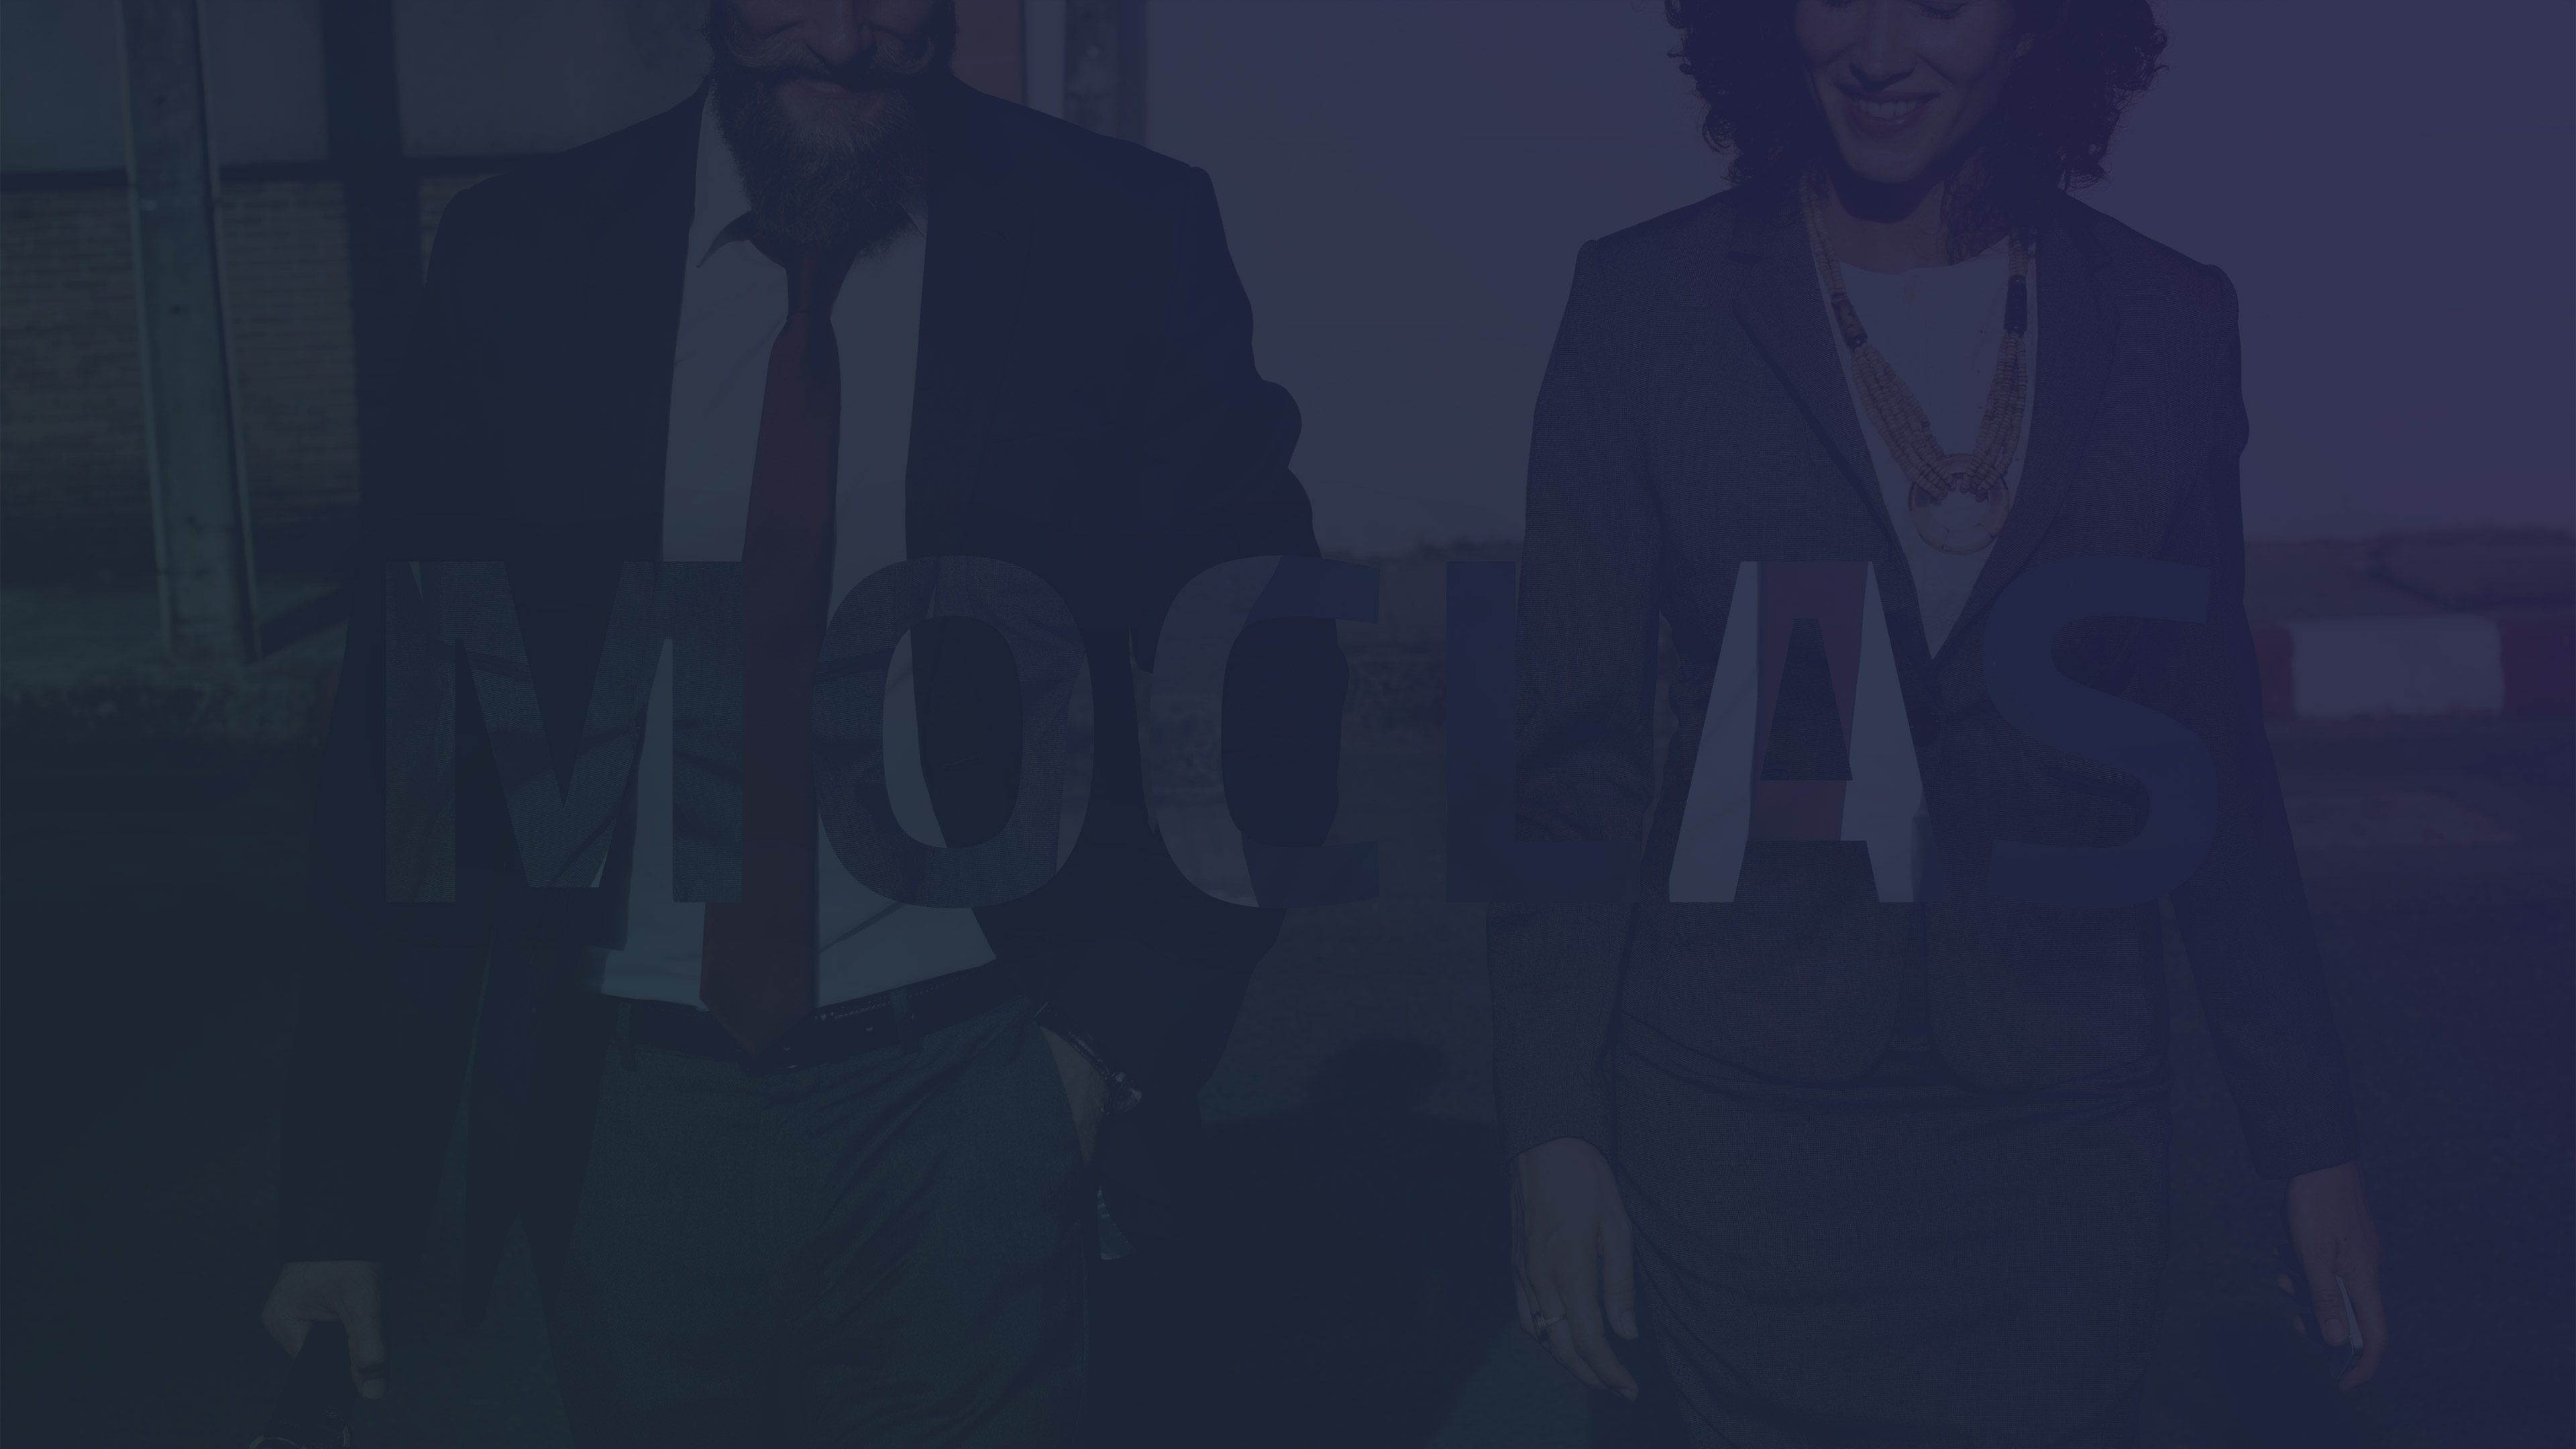 MOCLAS - Provide clients full satisfaction for your services